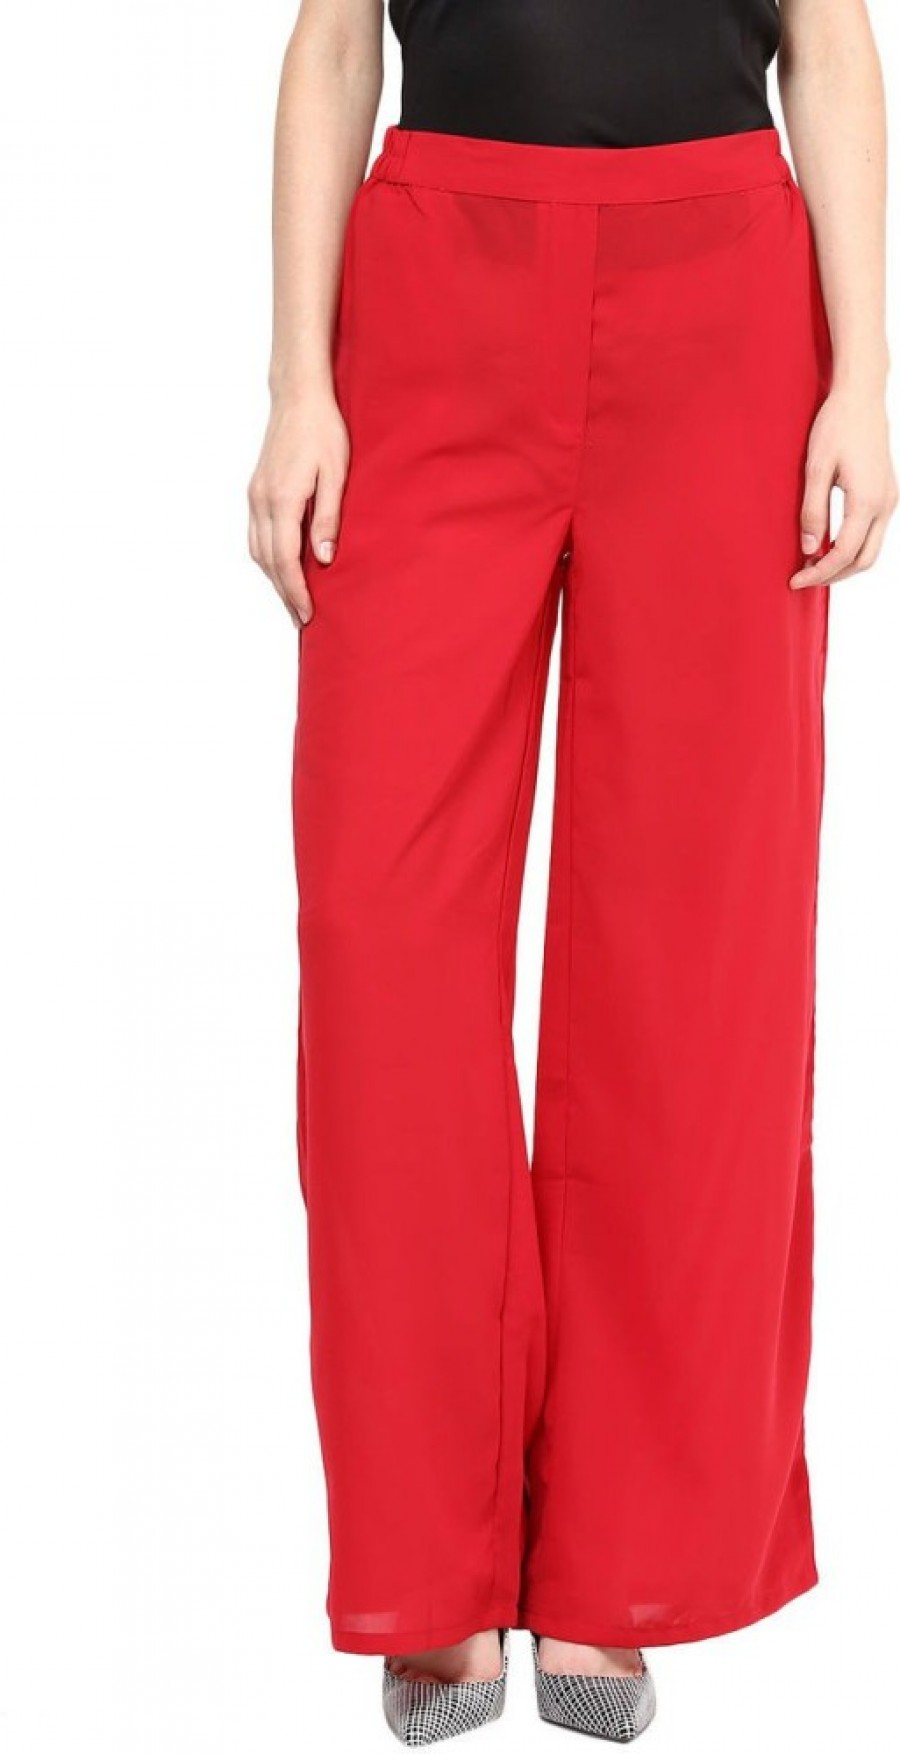 Buy Candies By Pantaloons Regular Fit Women Red Trousers Online